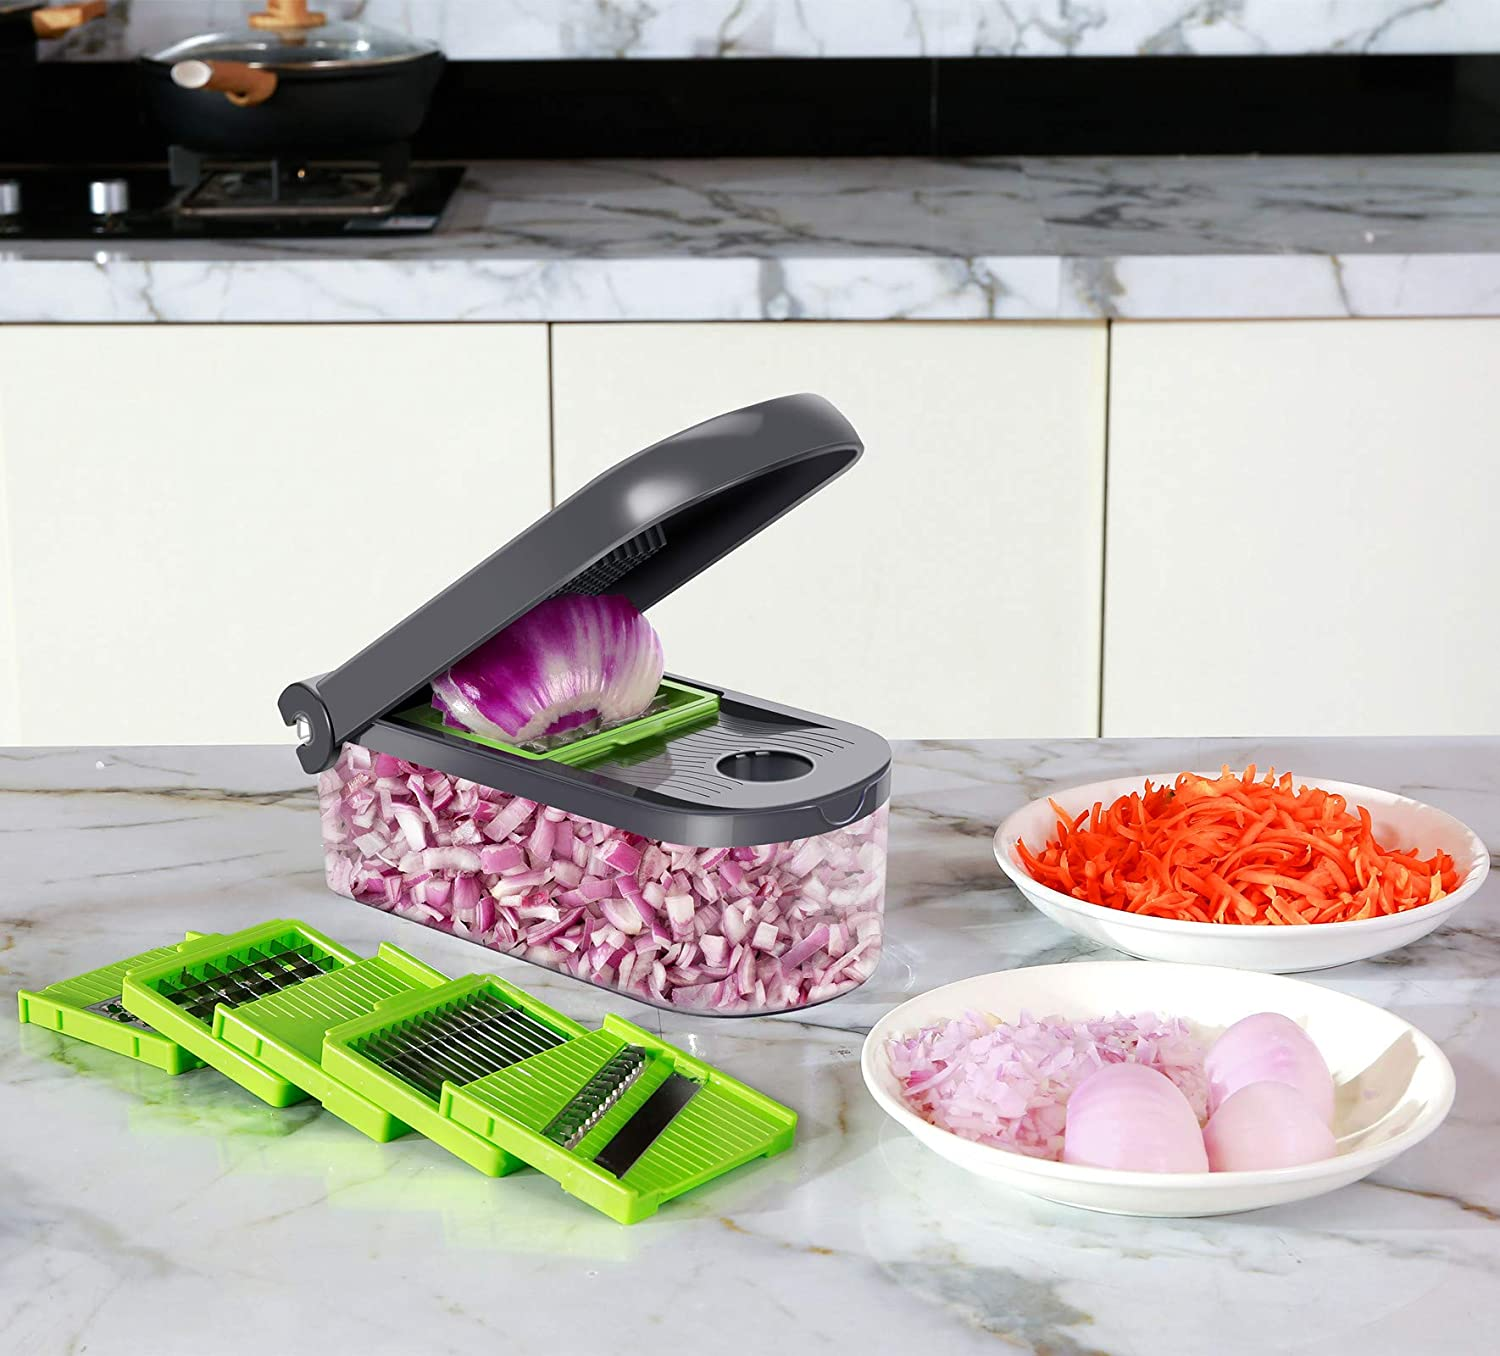 ChefHachiro Vegetable Chopper, Mandoline Cucumber Slicer, Onion Cube Cutter Dicer with Container, Easy to Clean Kitchenware combo with Stainless Steel Blades: Kitchen & Dining